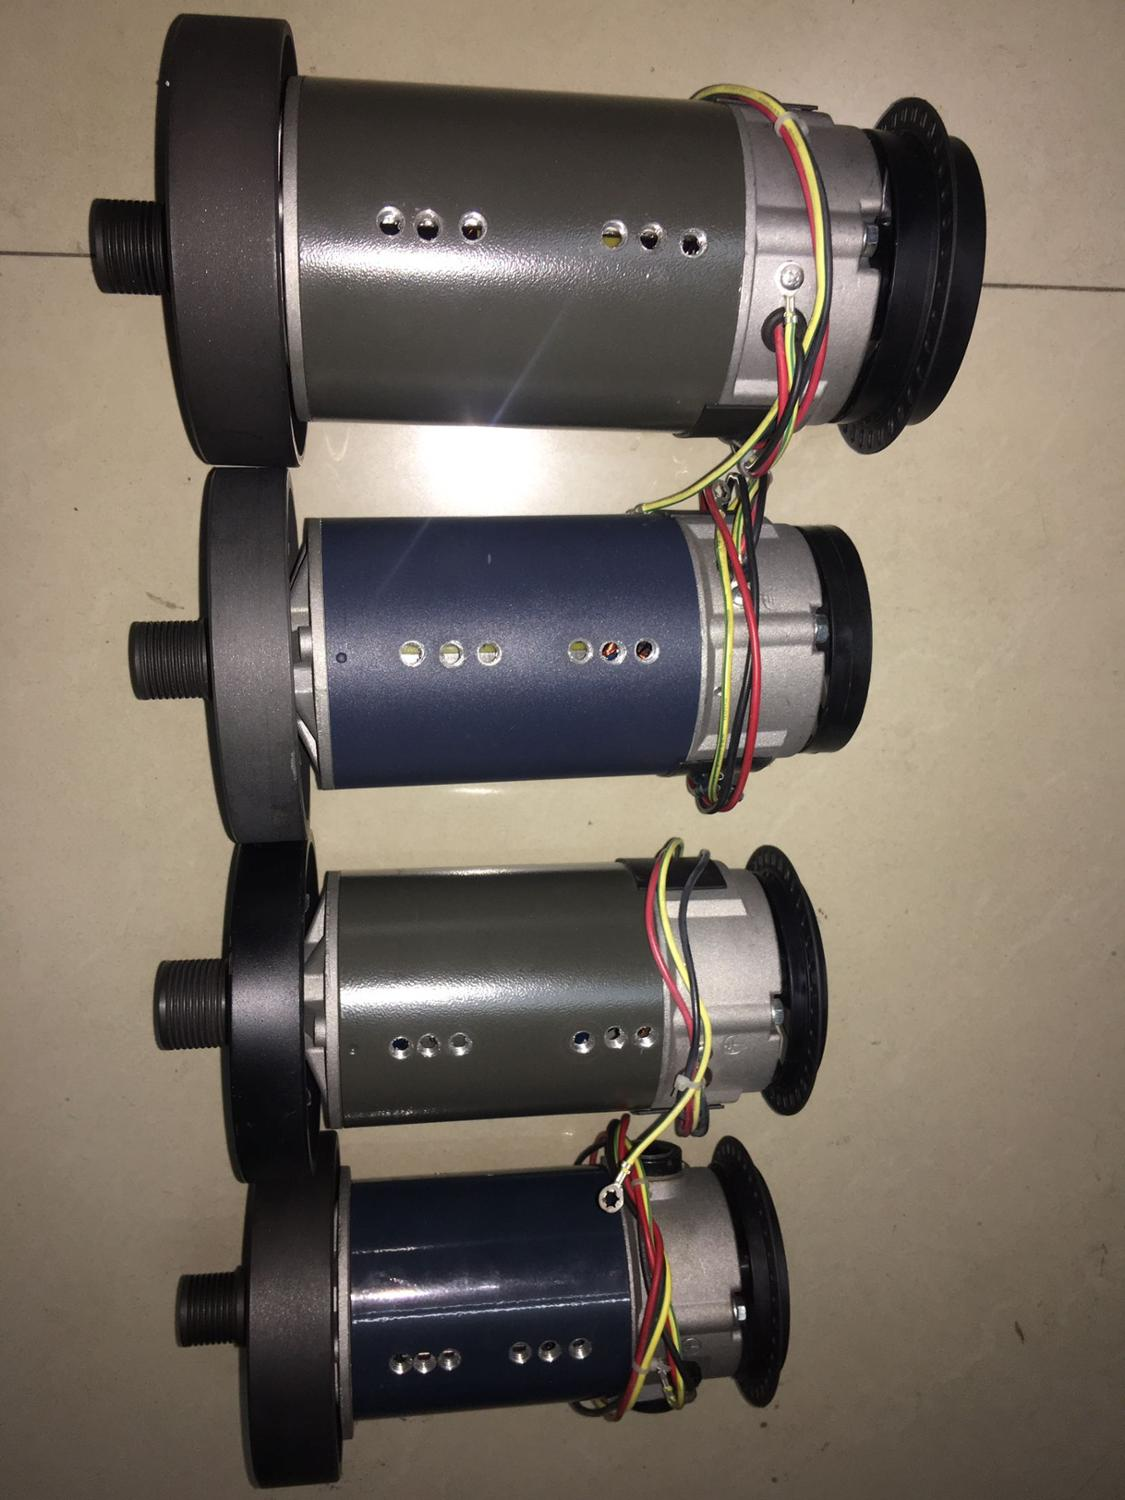 Fast Shipping 1.5HP 2HP 2.0HP 2.5HP 3HP 3.0HP 180V DC Motor Suit For Treadmill Model Universal Motor SHUA Brother OMA Family